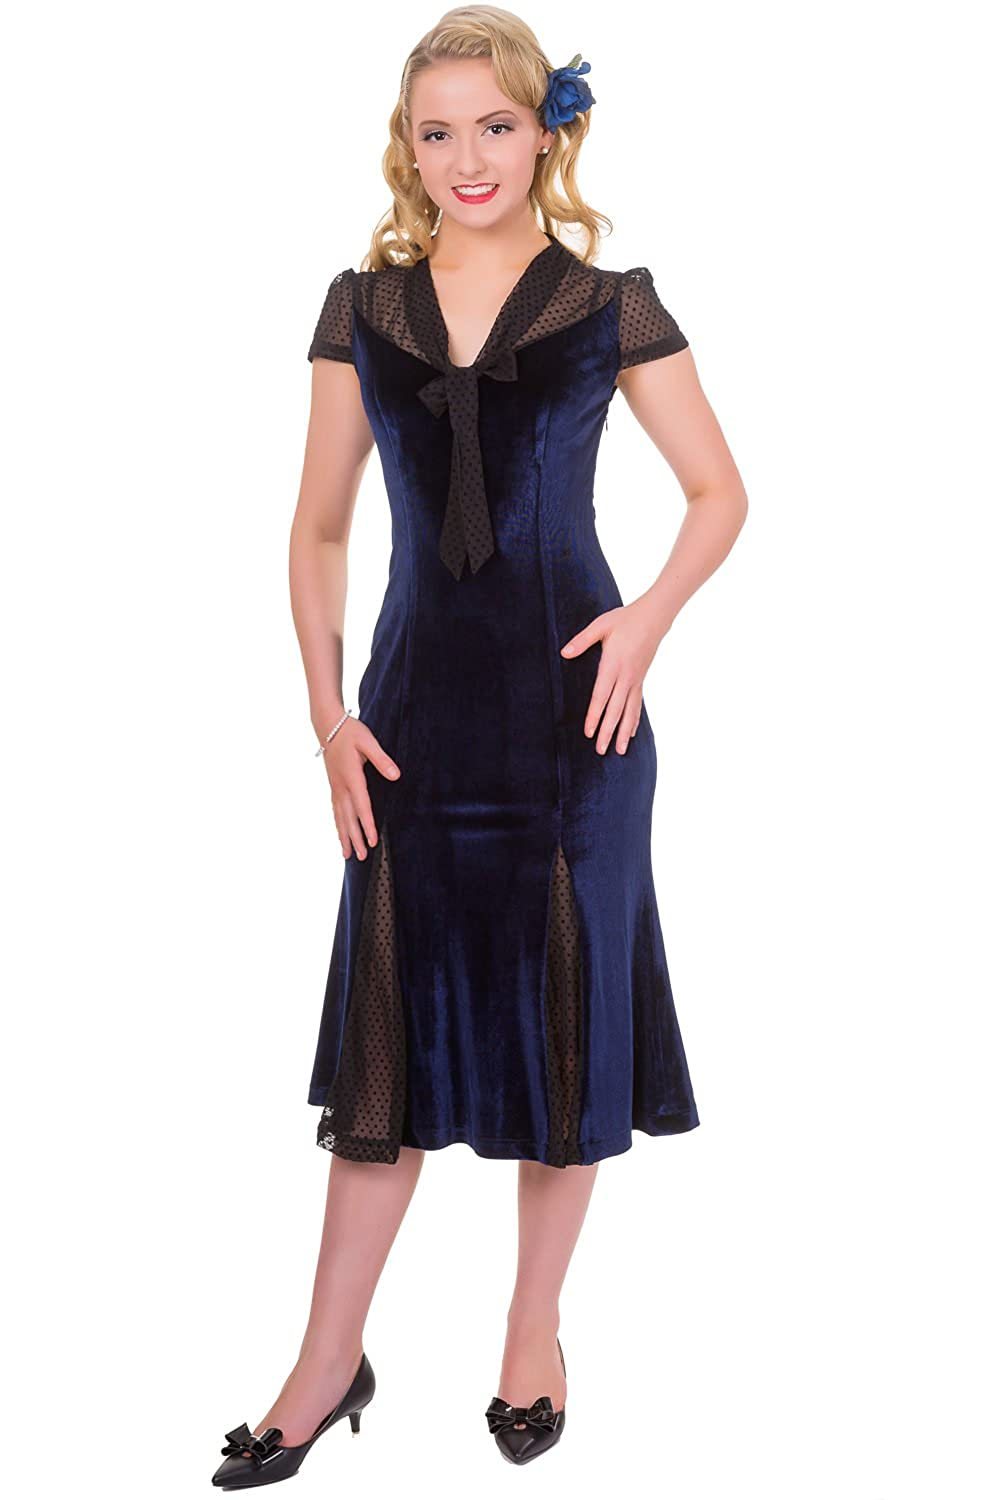 1920s Afternoon Dresses, Tea Dresses Banned Sensation Dress $69.95 AT vintagedancer.com